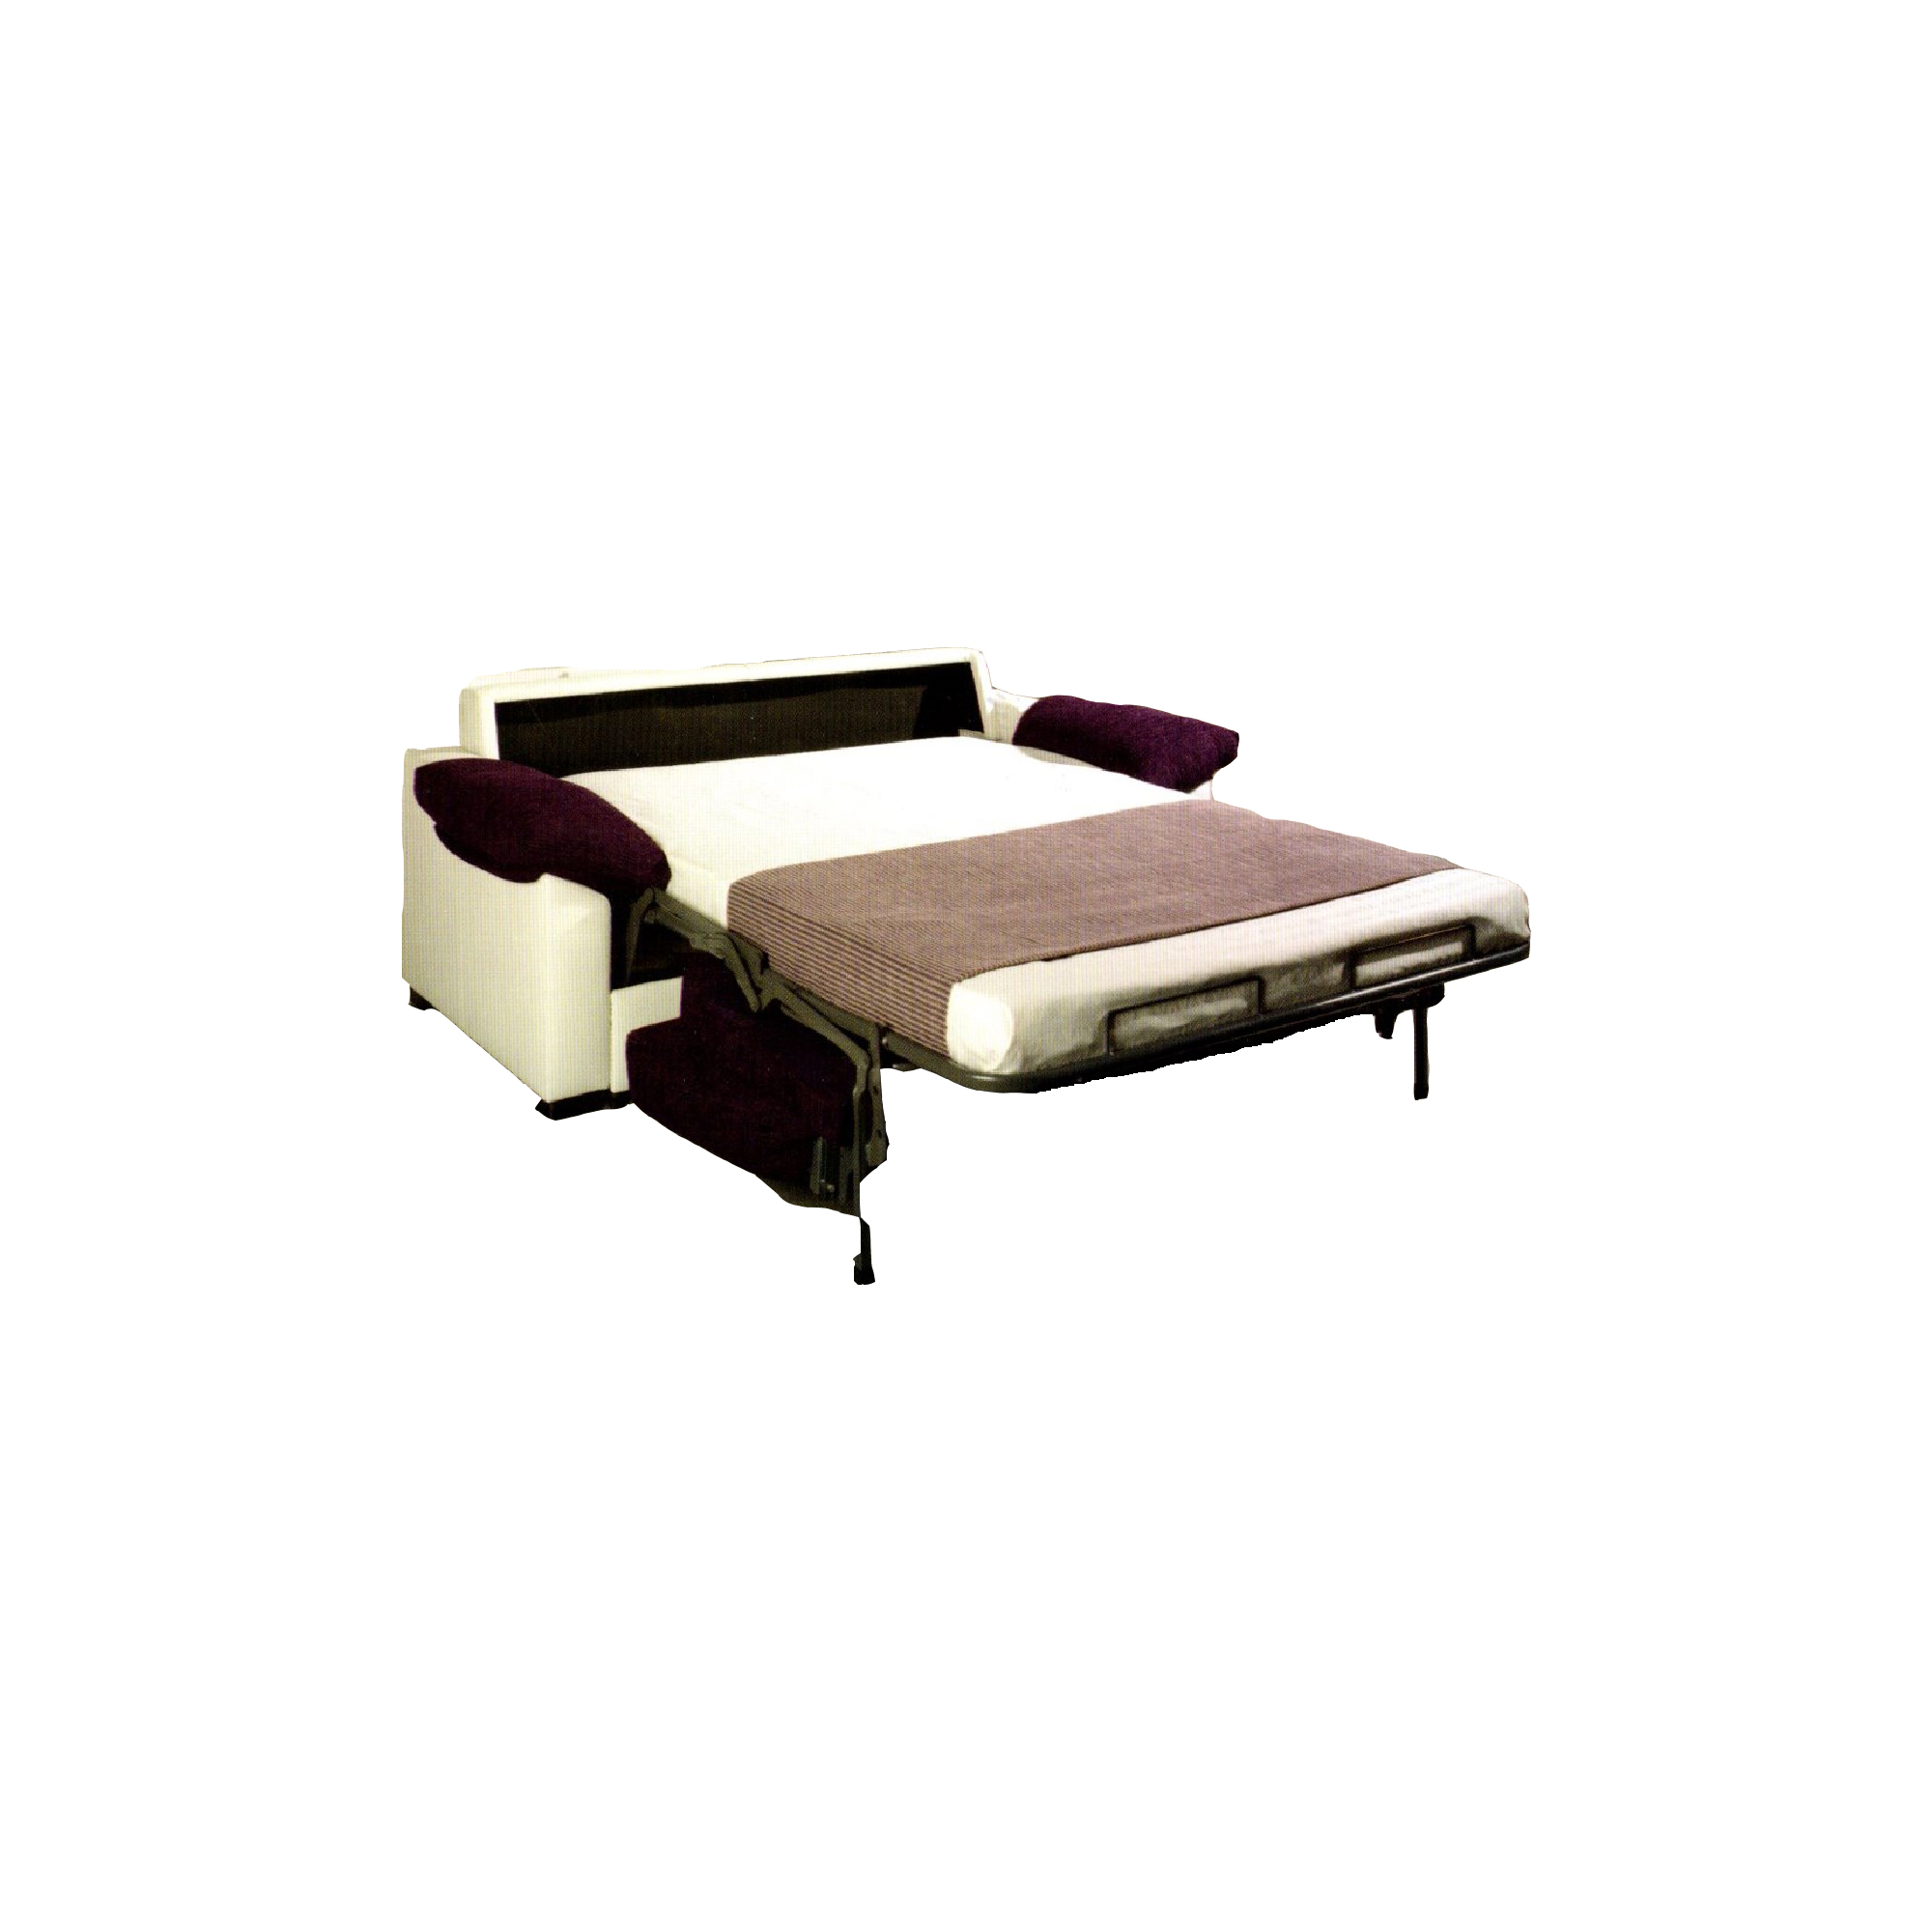 Sofa bed 2 seater 39 valeria 39 rooms for Sofa bed 2 seater